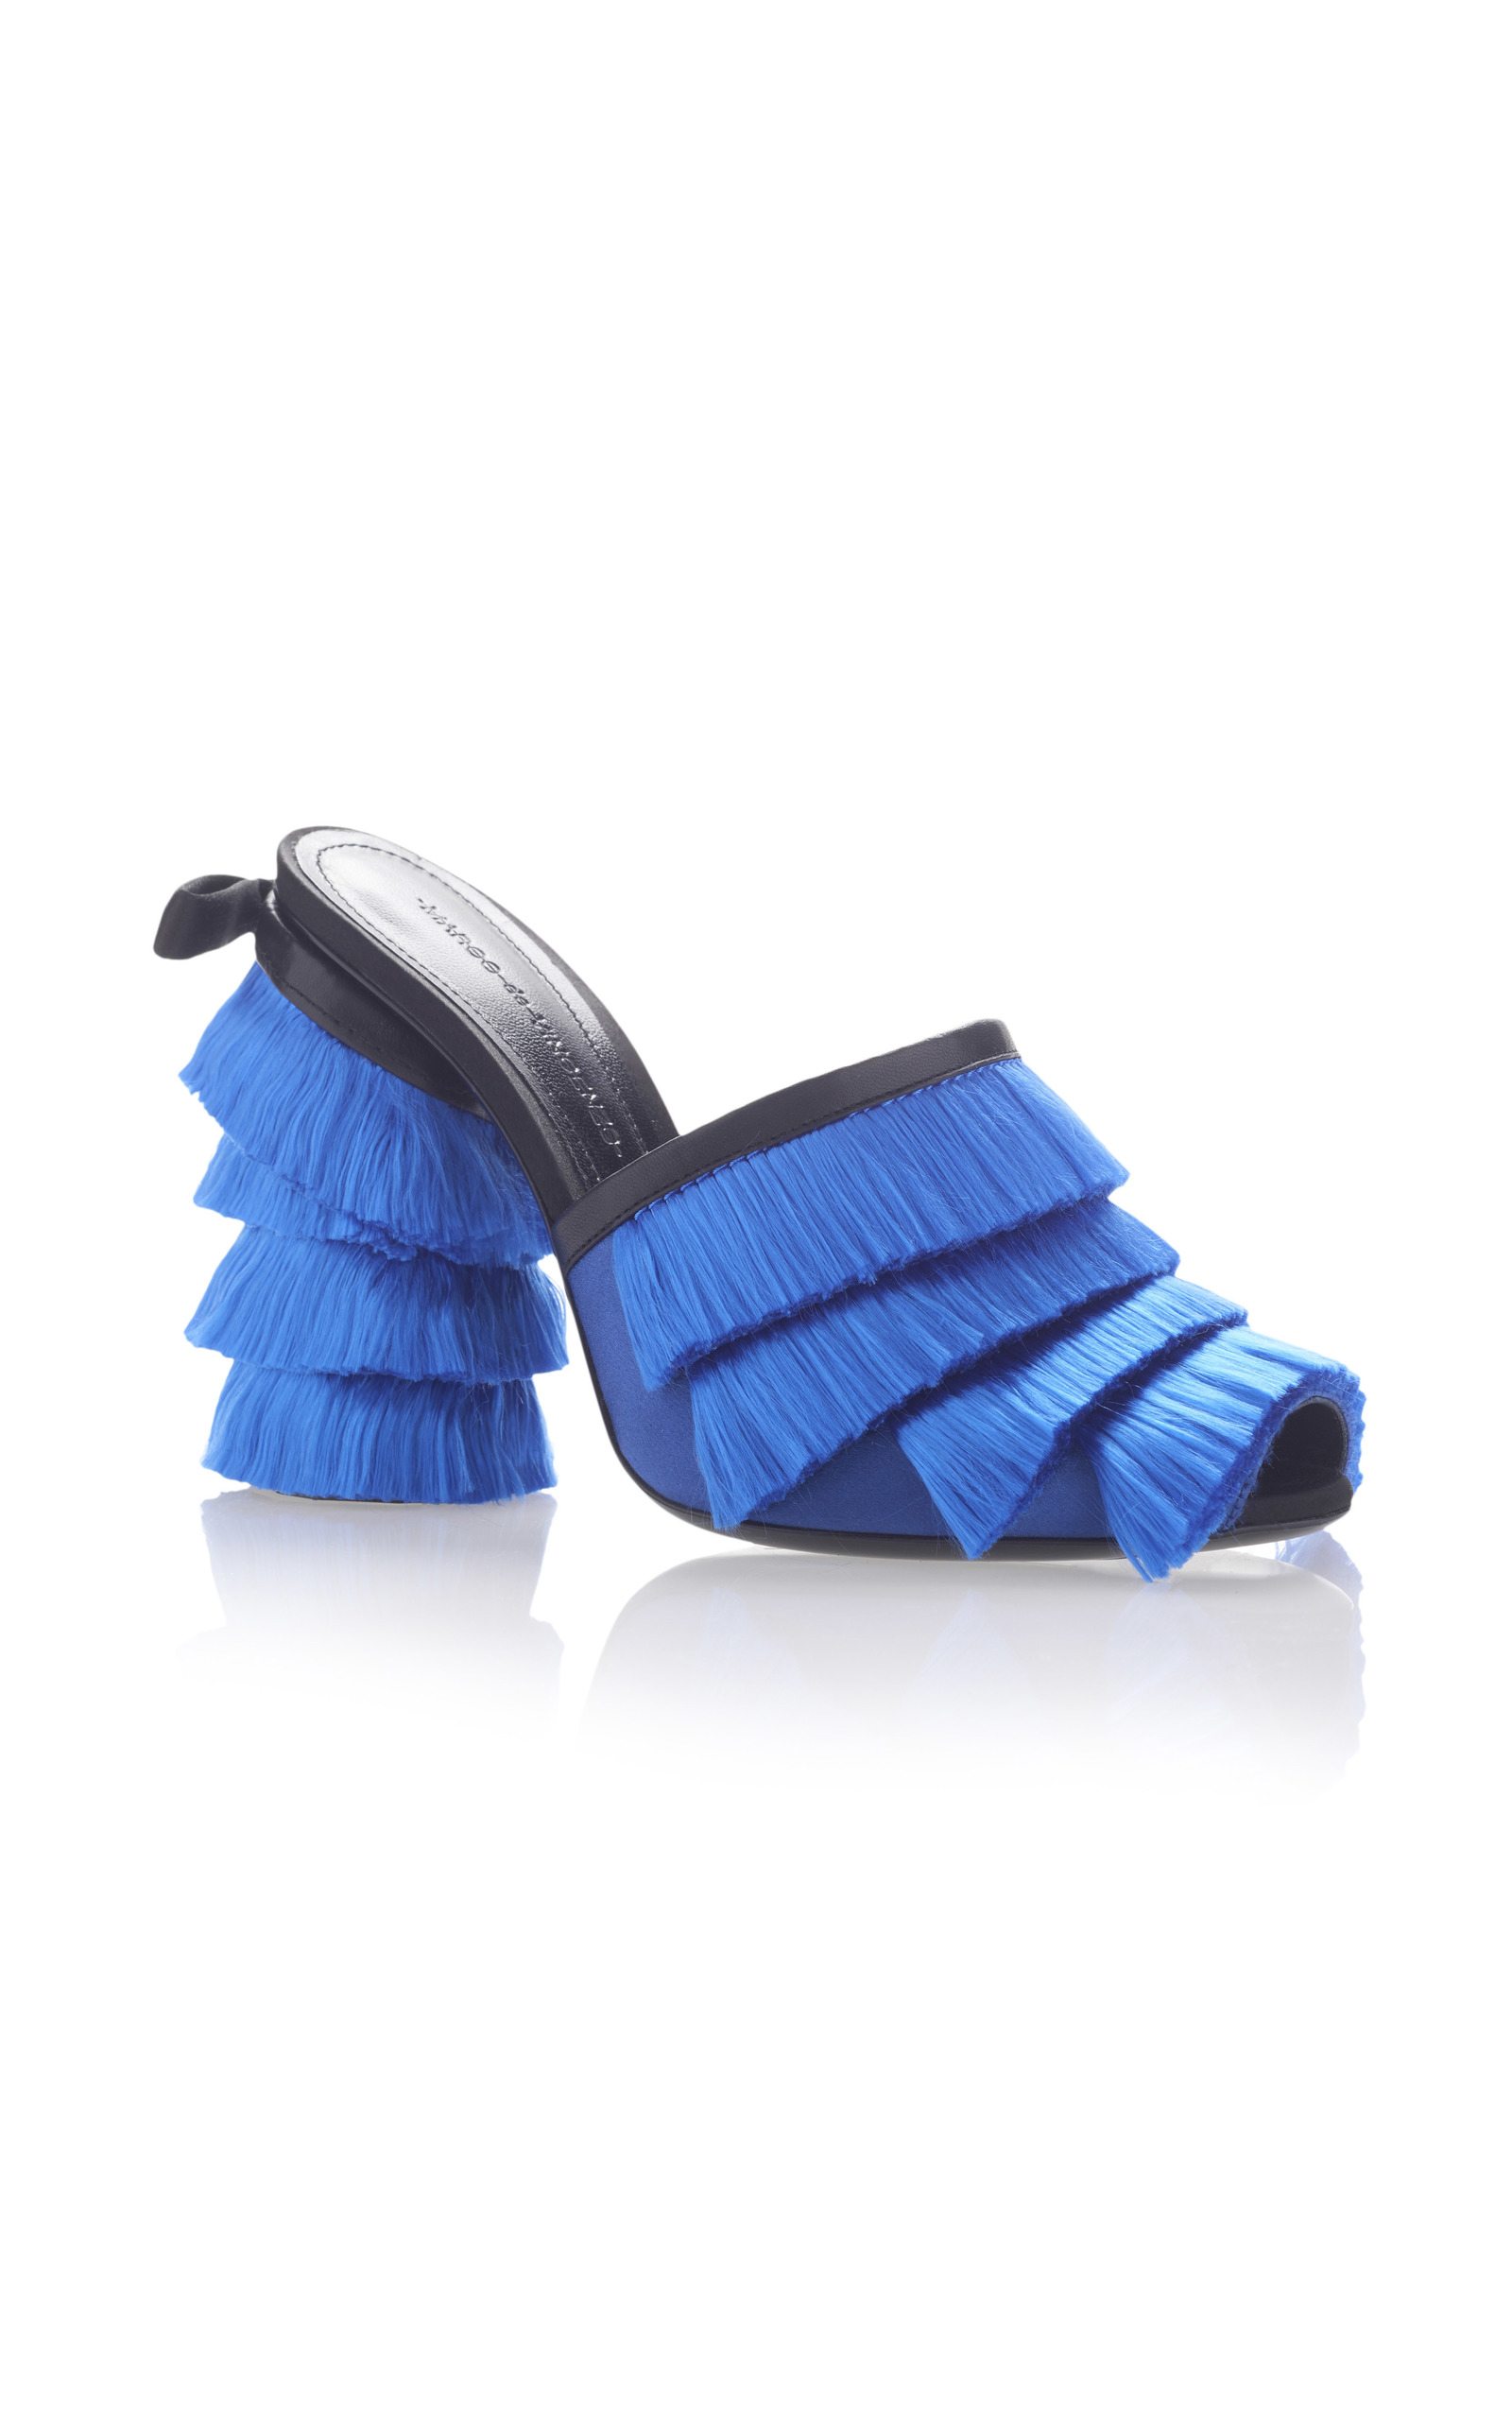 No21 Denim fringed sabot women's Sandals in Limited New Clearance Online Official Site Sale Visa Payment Sale Pay With Paypal OwvuMF0